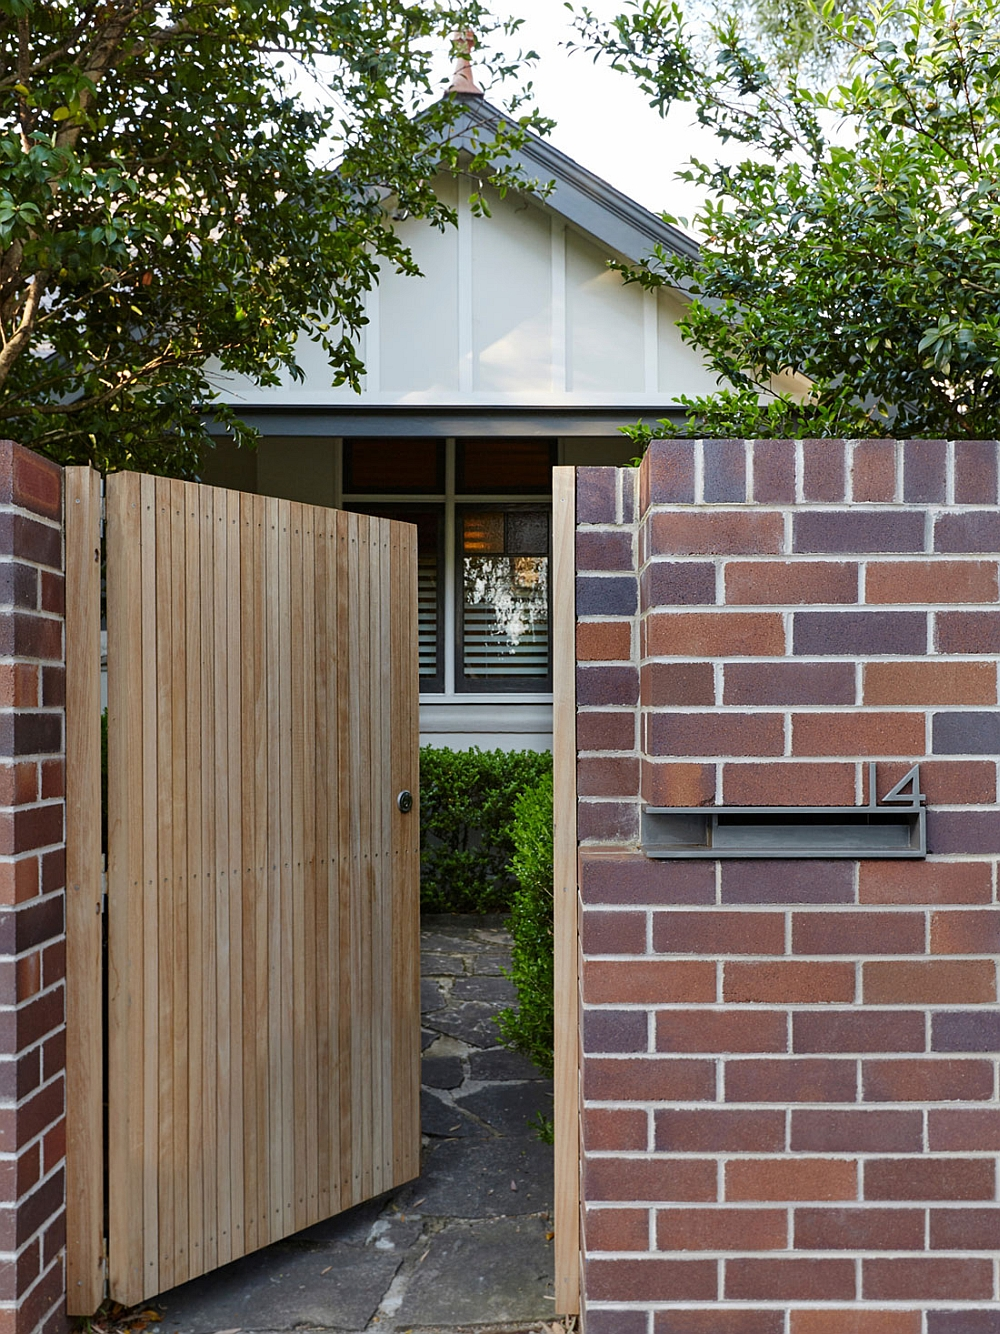 Street facade of the Neutral Bay House, Down Under in Australia